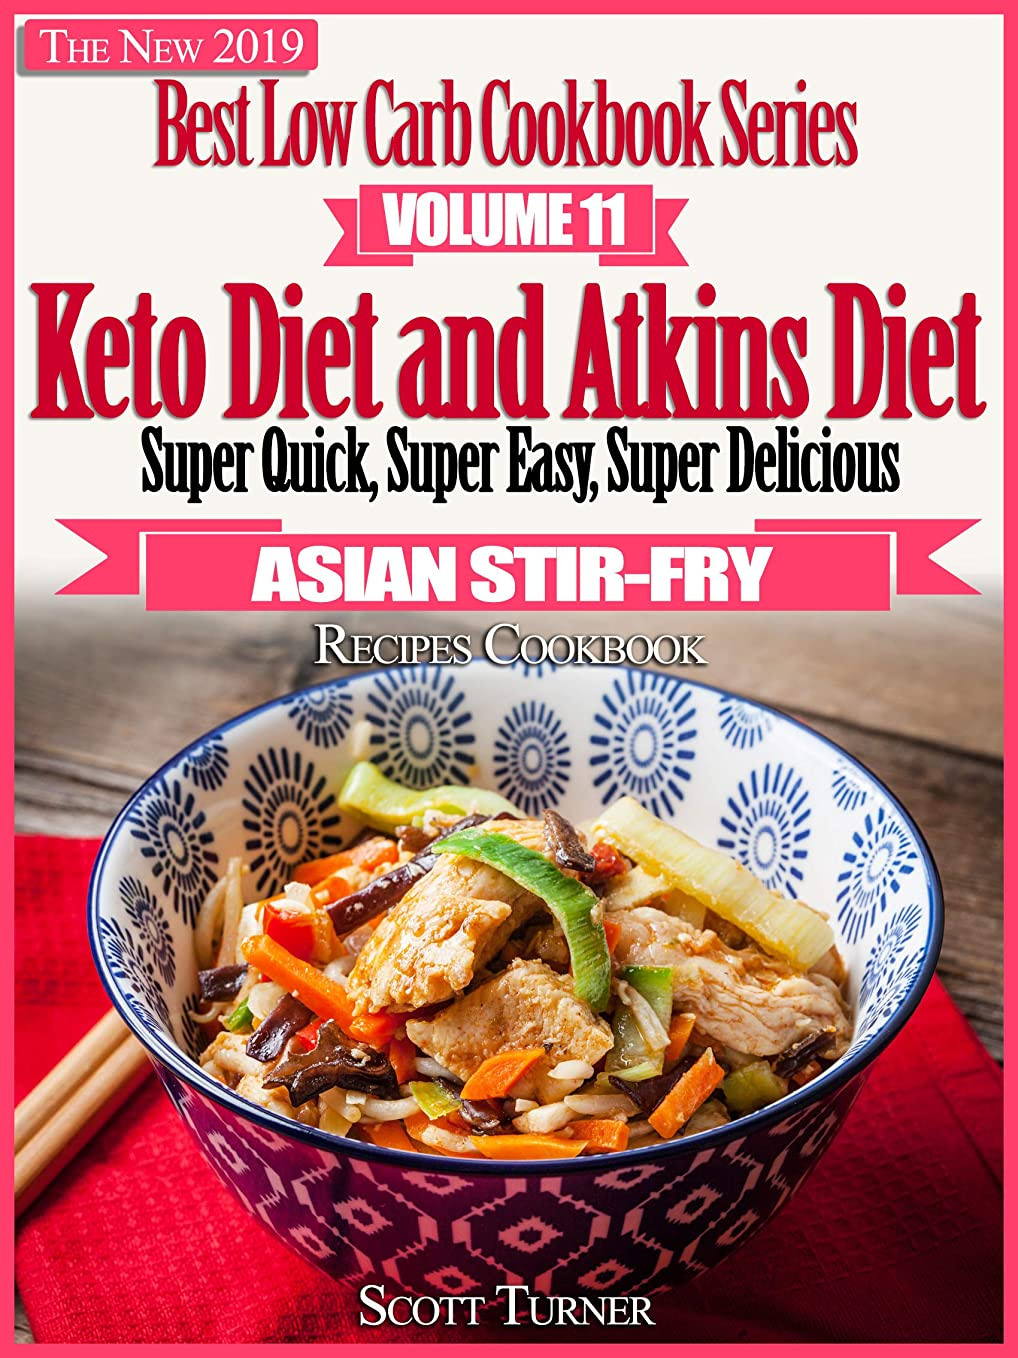 The New 2019 Best Low Carb Cookbook Series, Volume Eleven: Keto Diet and Atkins Diet Super Quick, Super Easy, Super Delicious Asian Stir-Fry Recipes Cookbook (English Edition)